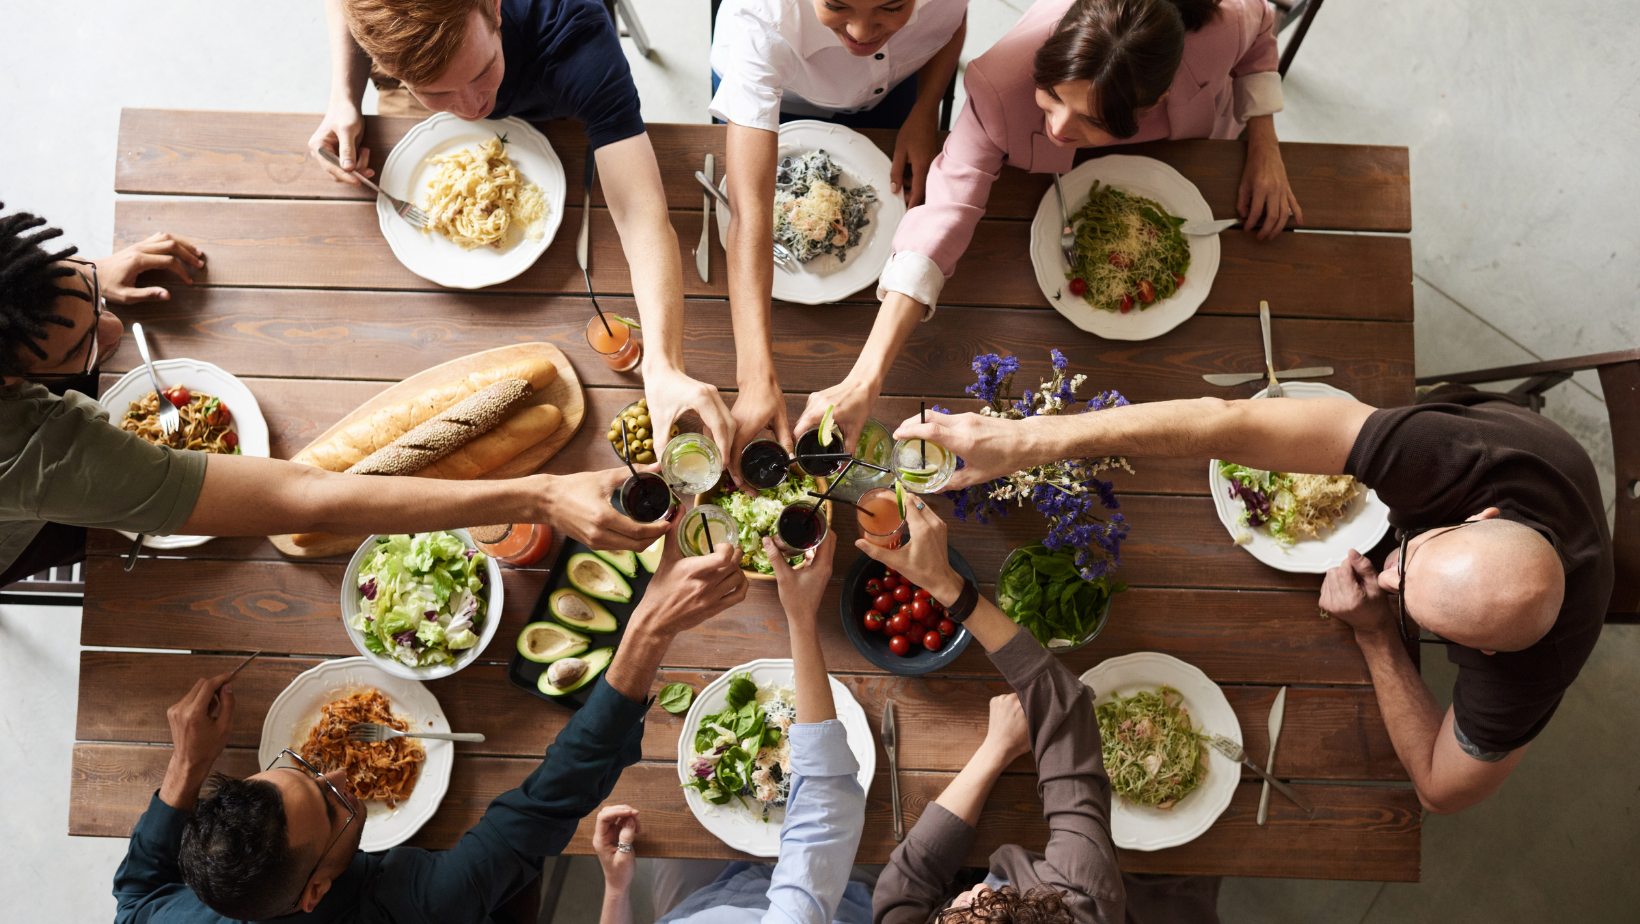 The 10 Commandments of Dinner Parties (from an anxious hostess)